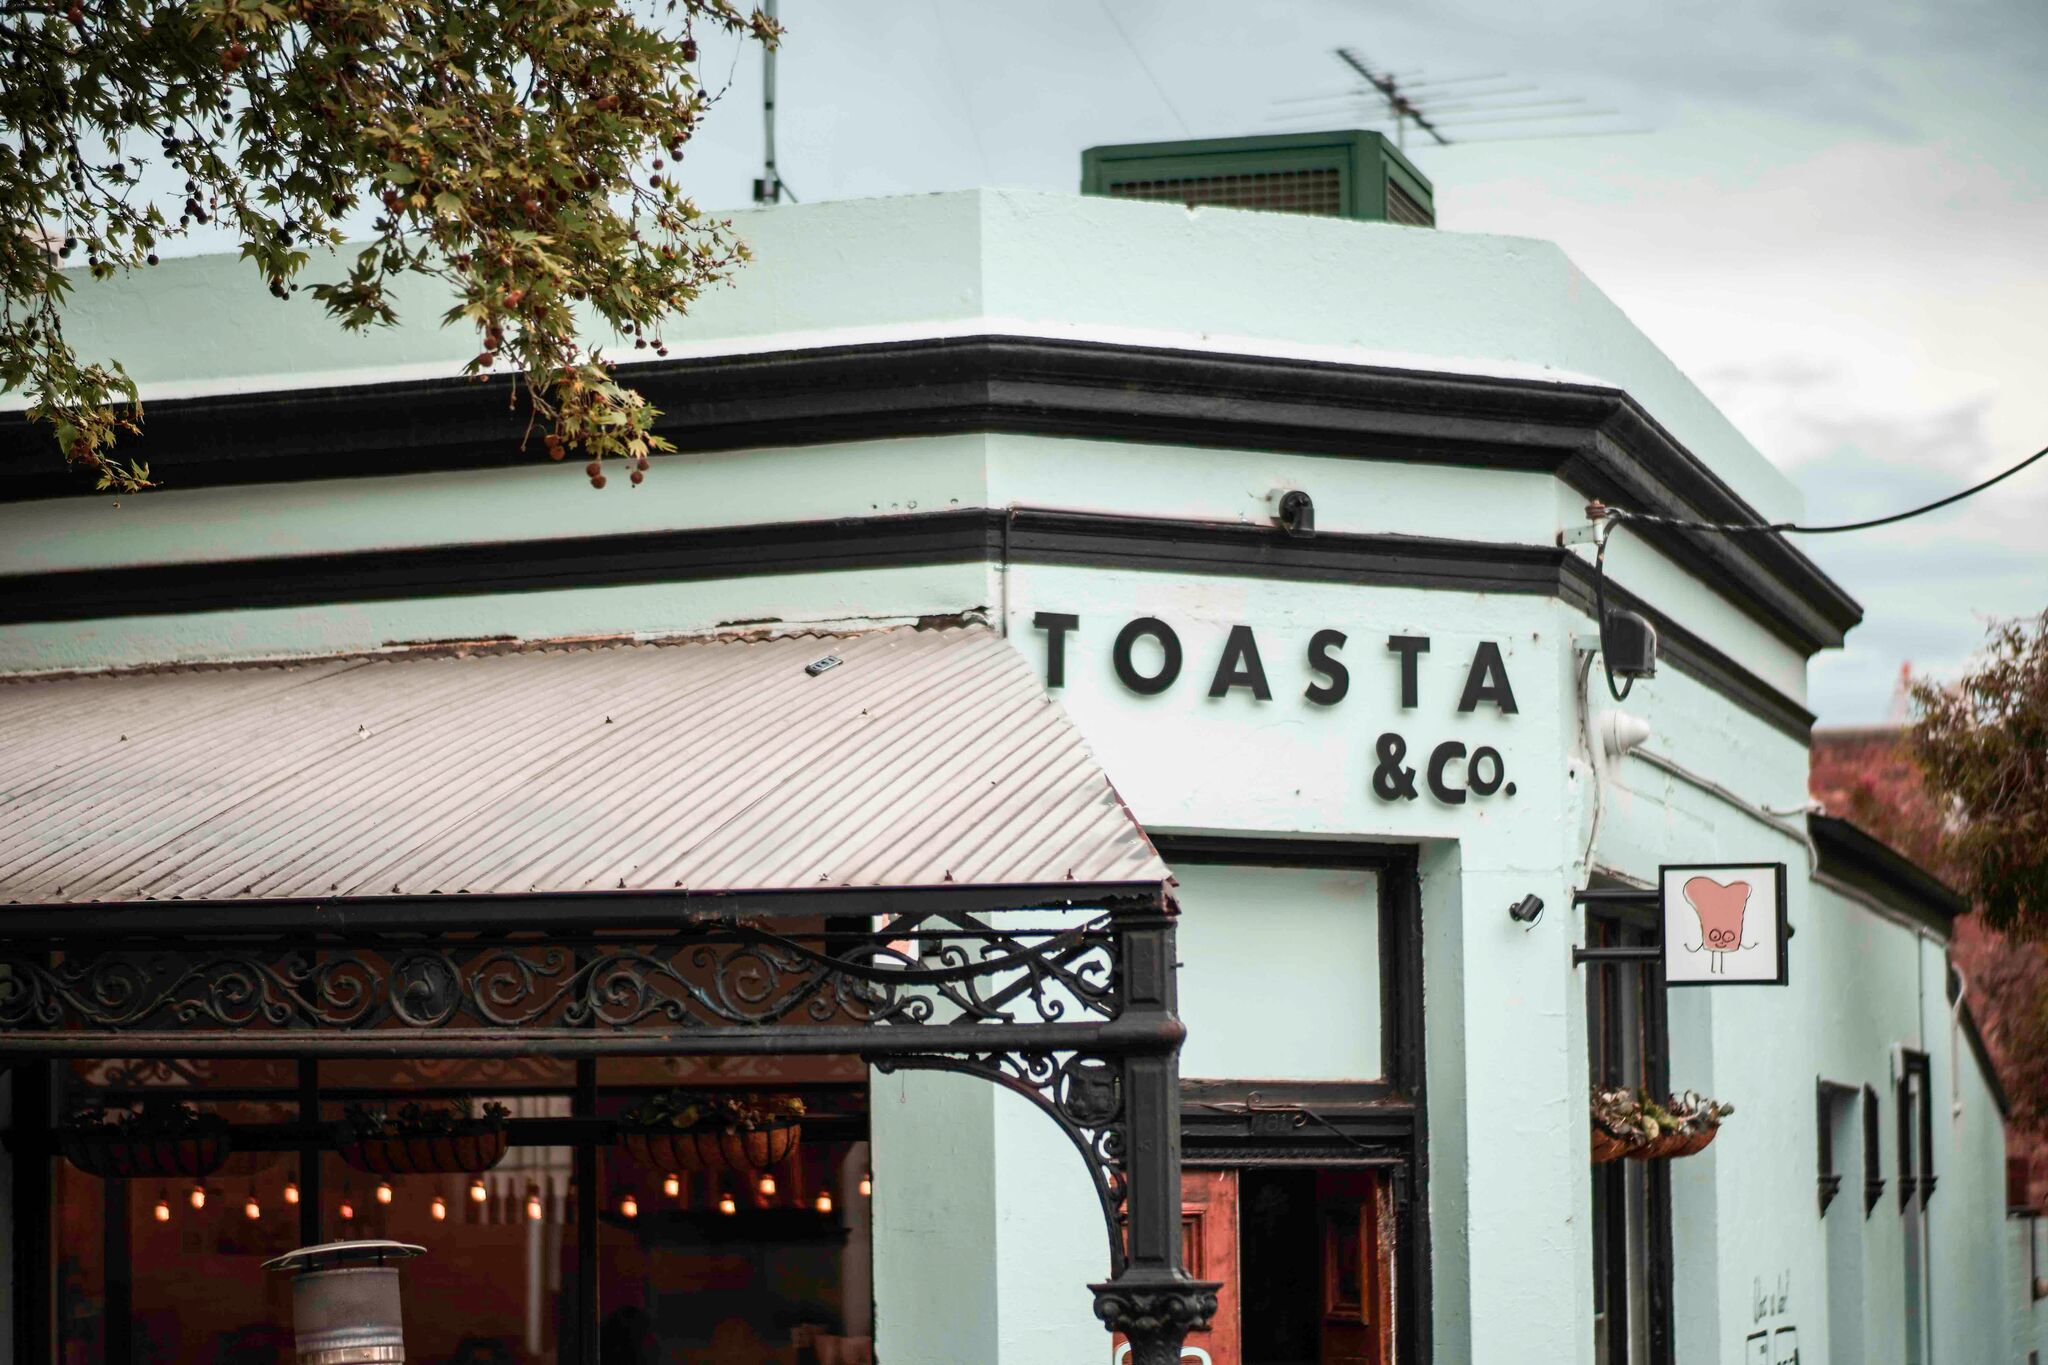 20171011_Toasta (6 of 45)_preview.jpg